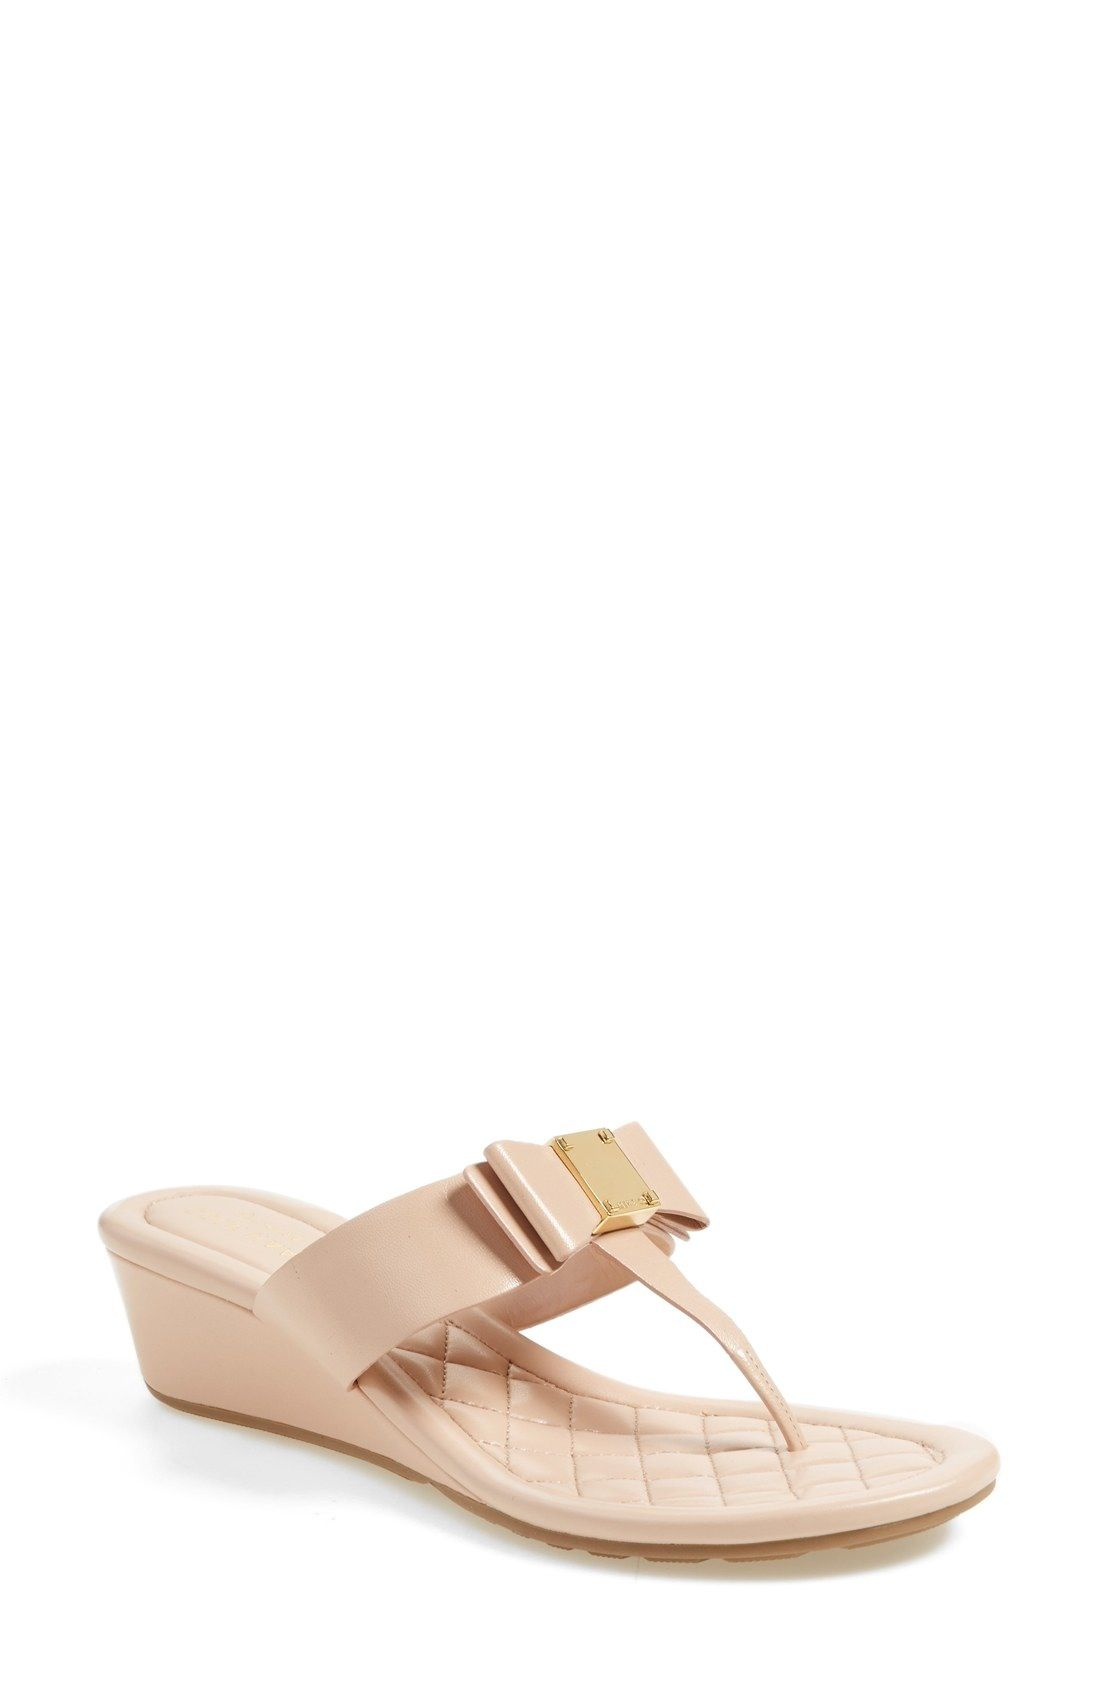 Cole Haan 'Tali Bow' Wedge Sandal